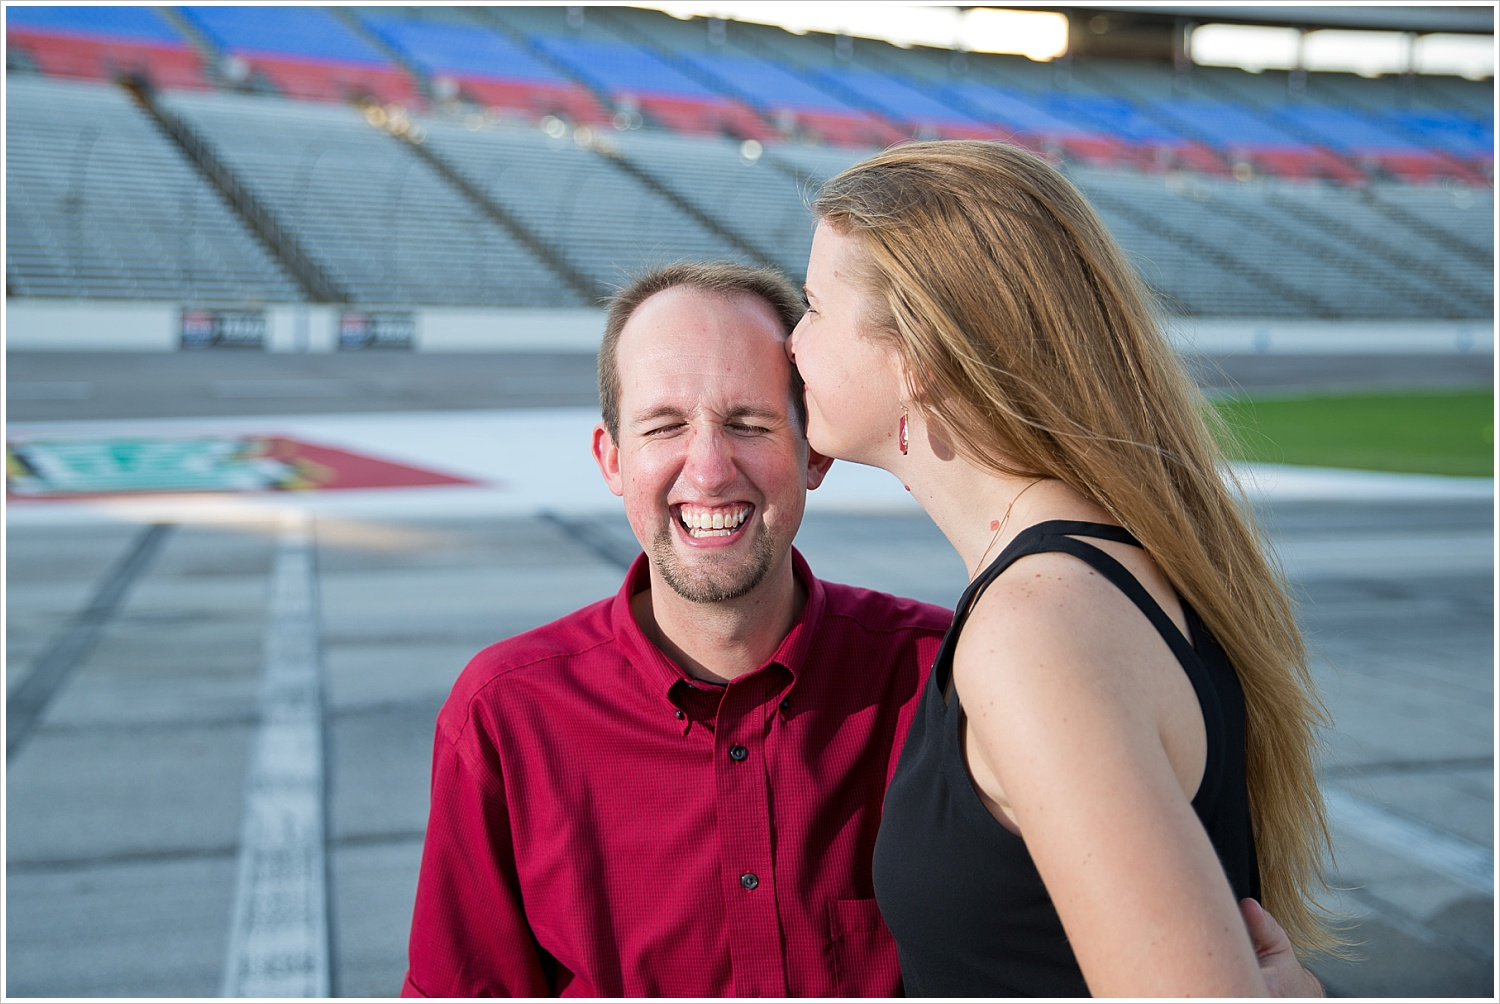 Engagement portraits at Texas Motor Speedway | Texas Wedding Photography by Jason and Melaina Photography